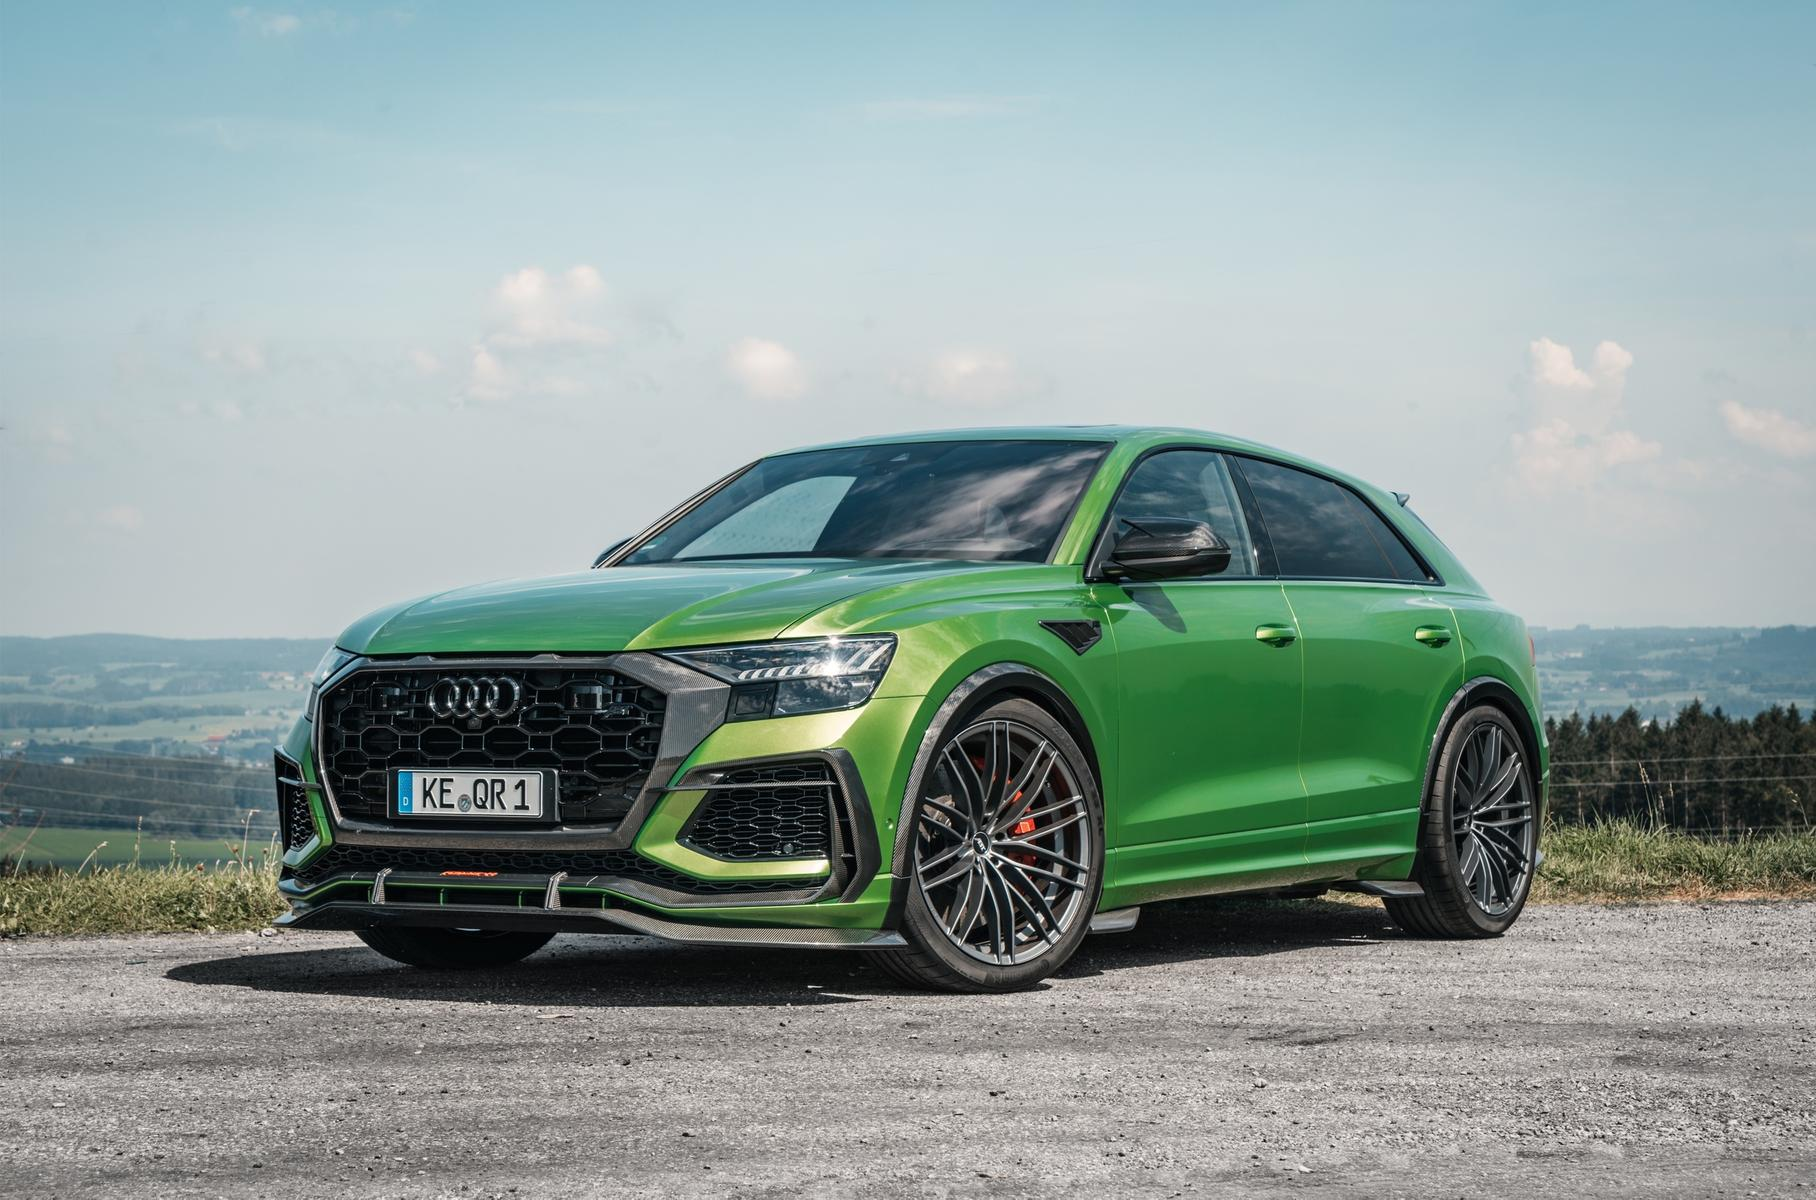 Audi's most faithful tuner is celebrating its 125th birthday this year. To reward clients and fans for their loyalty, the company will be making 125 custom Audi RS Q8 builds complete with a carbon-fiber body kit and a boosted engine.